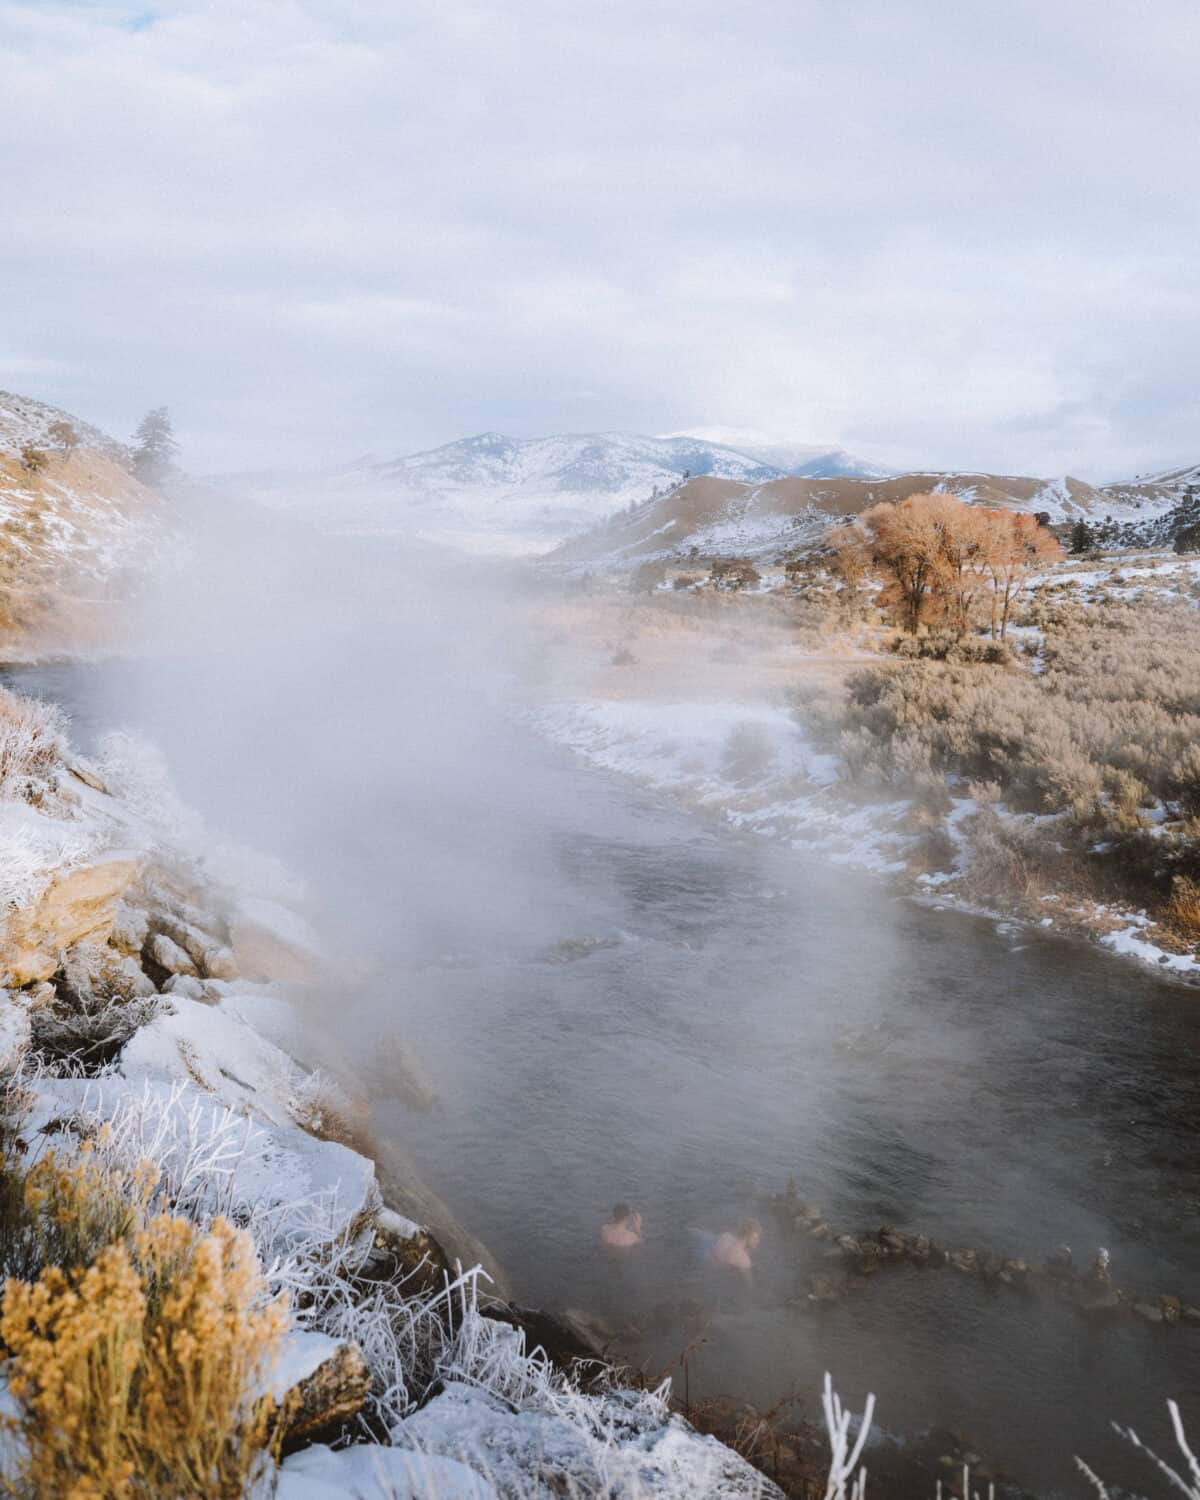 View of people soaking in the Boiling River - TheMandagies.com